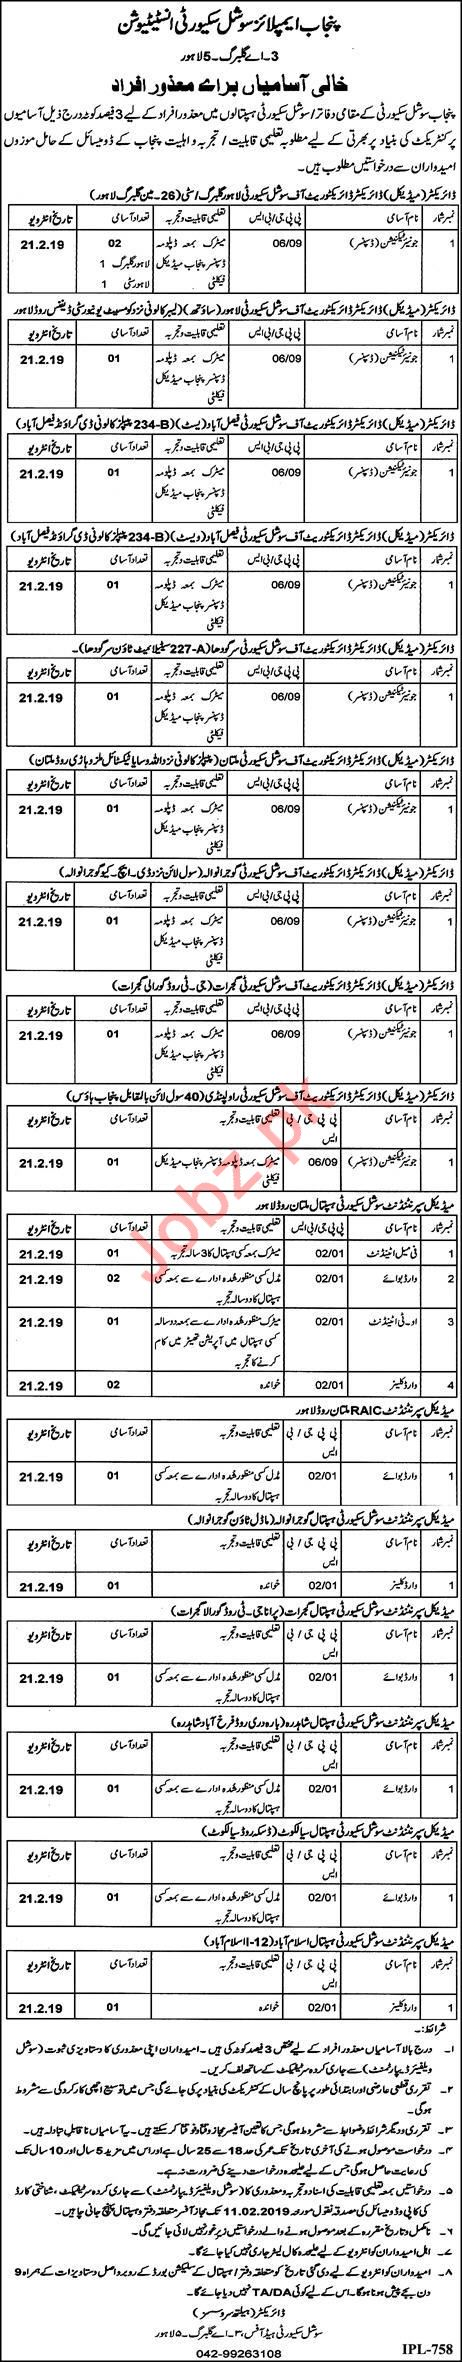 Punjab Employees Social Security Institution Jobs 2019